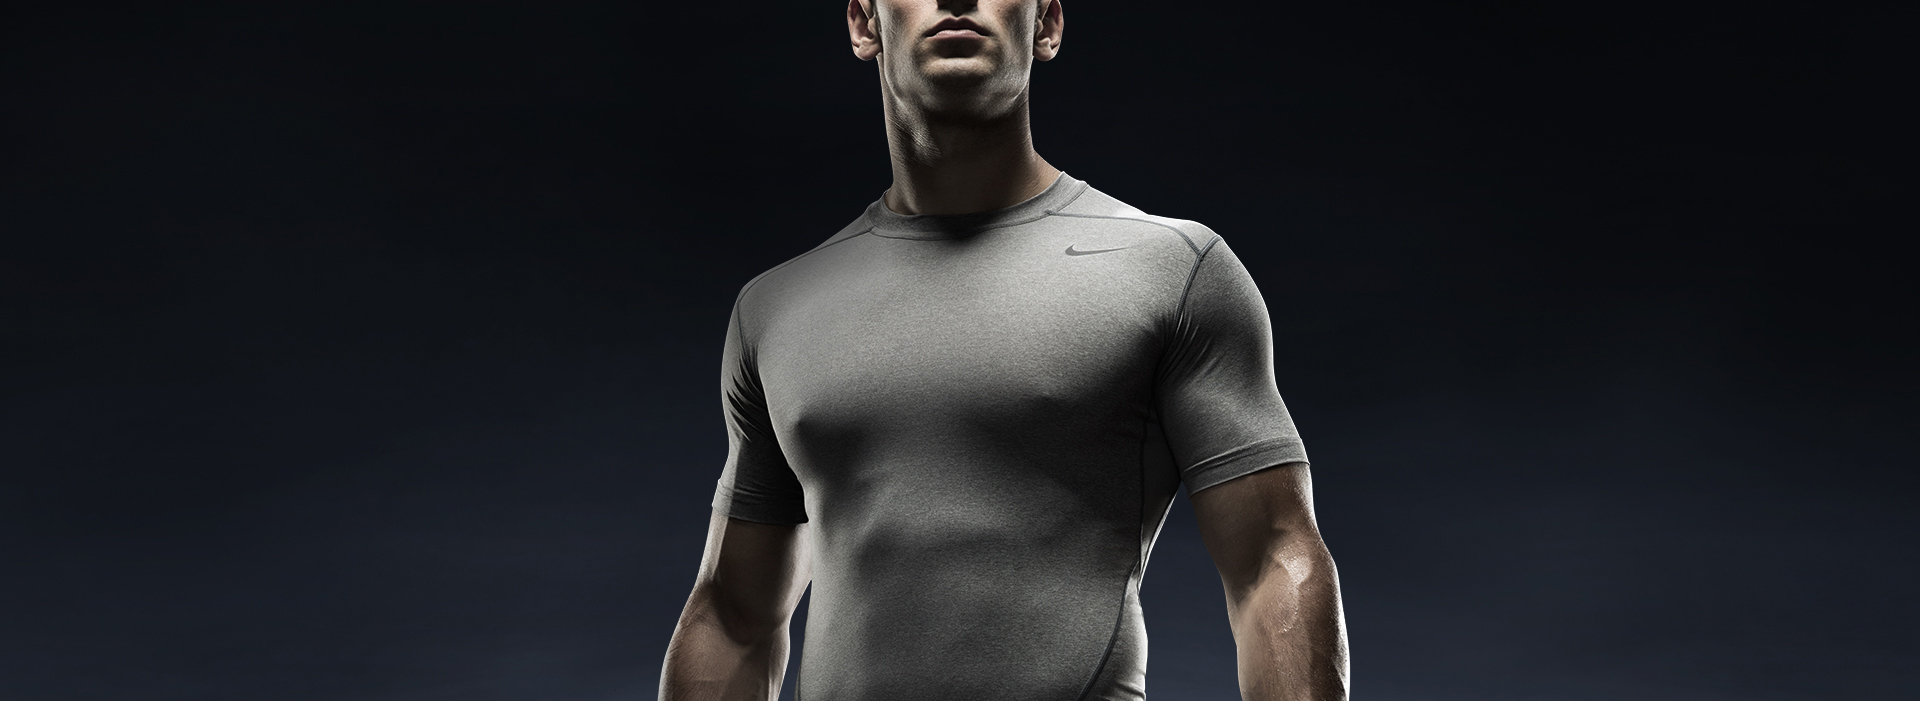 nike pro combat compression short sleeve santillana compartirsantillana compartir. Black Bedroom Furniture Sets. Home Design Ideas